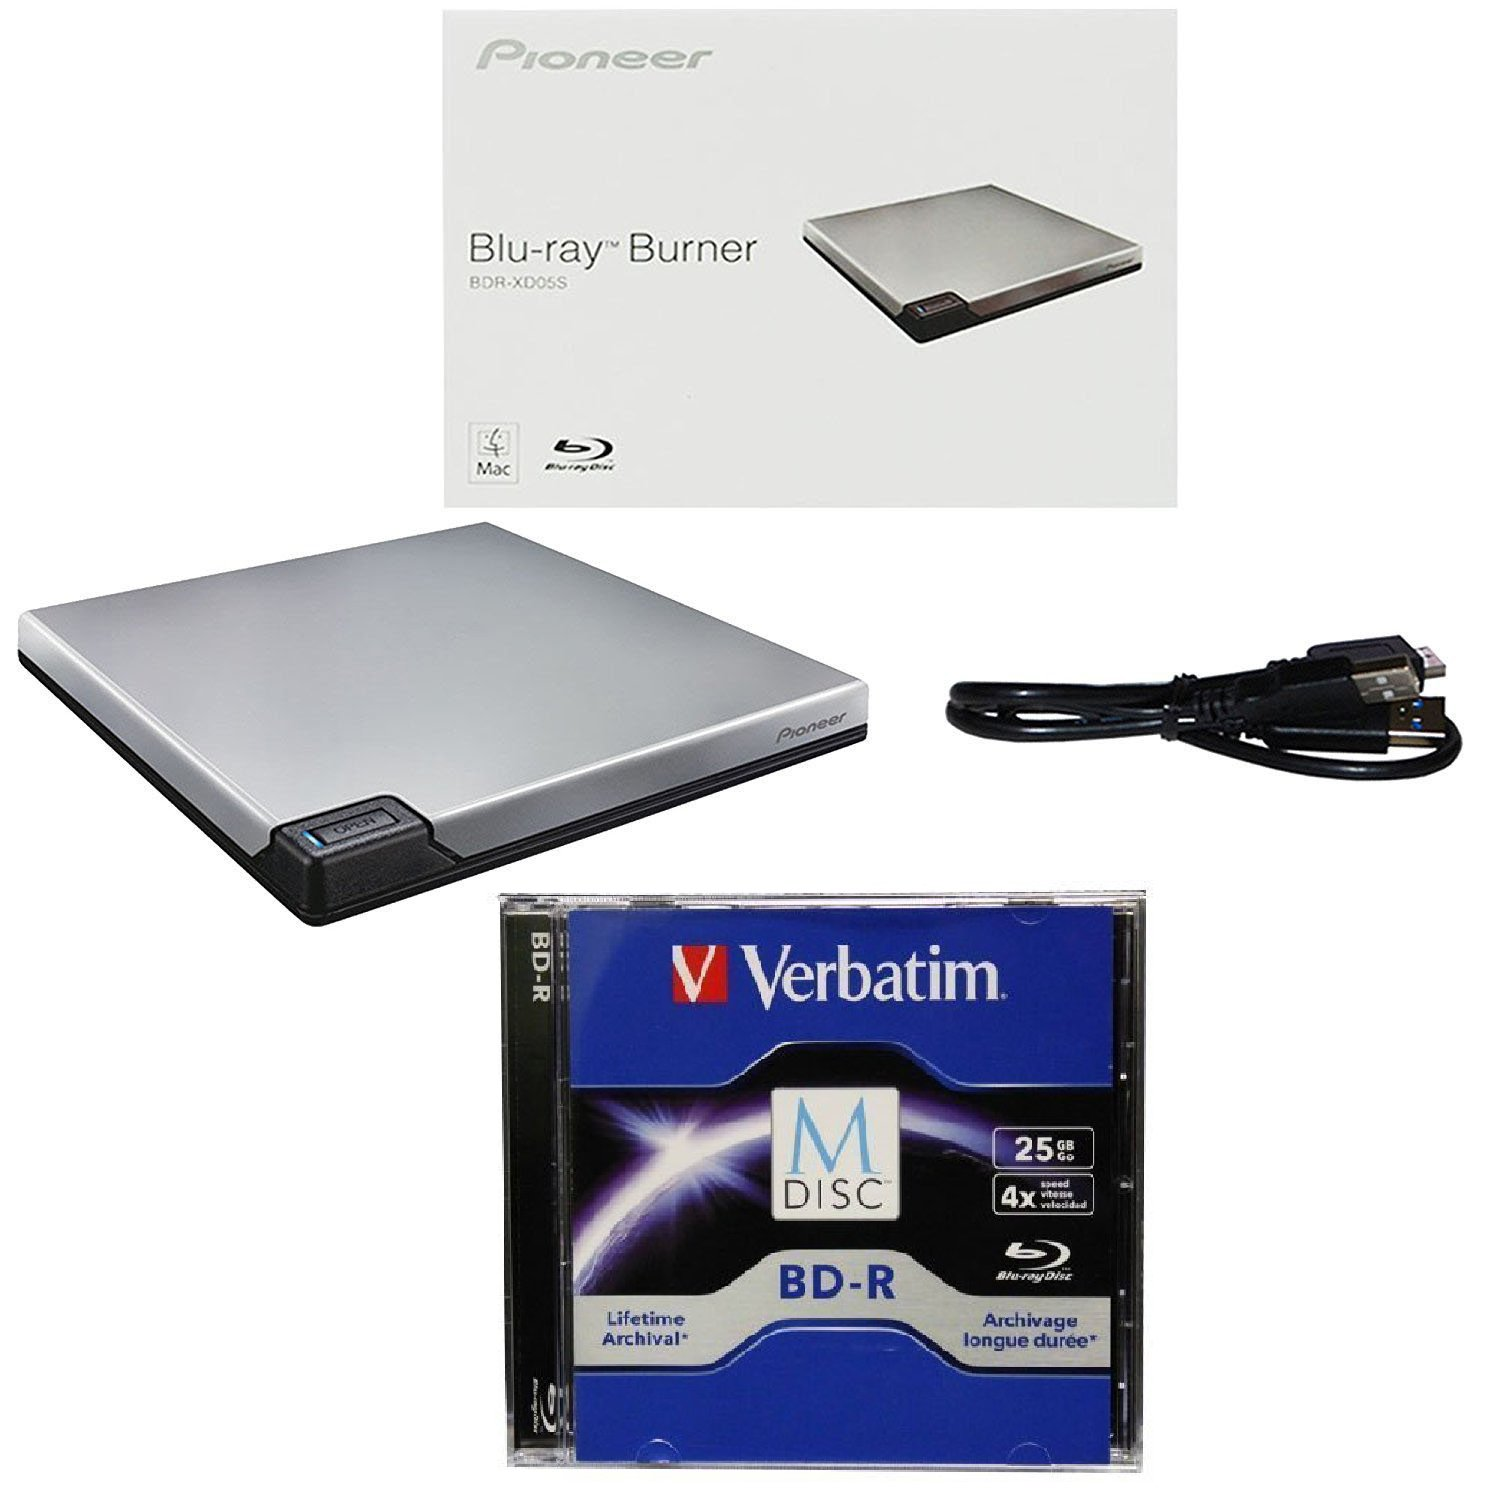 Pioneer 6X BDR-XD05S Portable USB 3.0 Blu-ray Burner Bundle with 1 Pack M-DISC BD - Supports BDXL, BD, DVD, and CD Media (Silver, Retail Box)